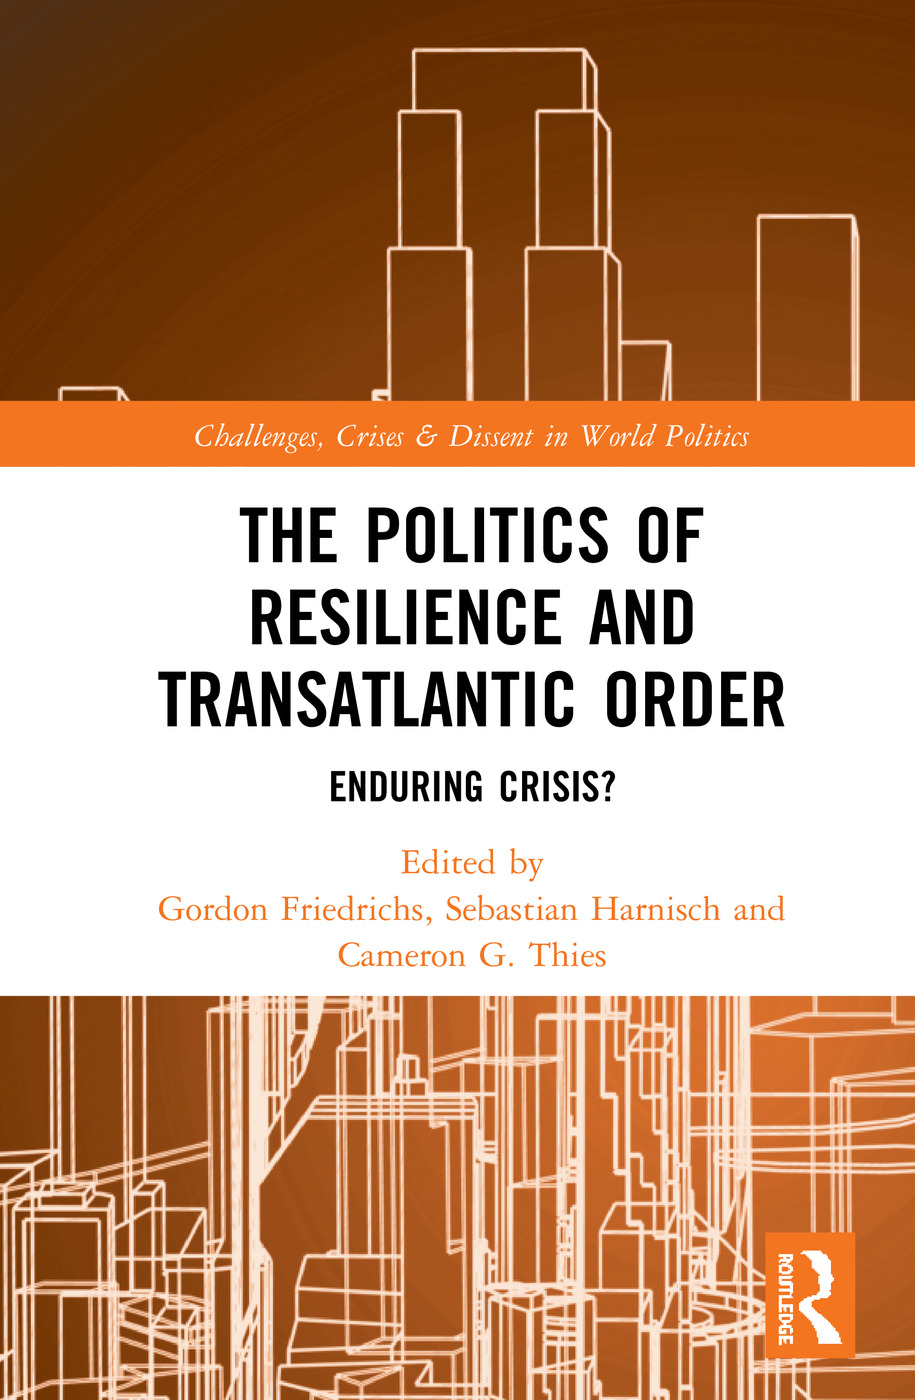 The Politics of Resilience and Transatlantic Order: Enduring Crisis? book cover